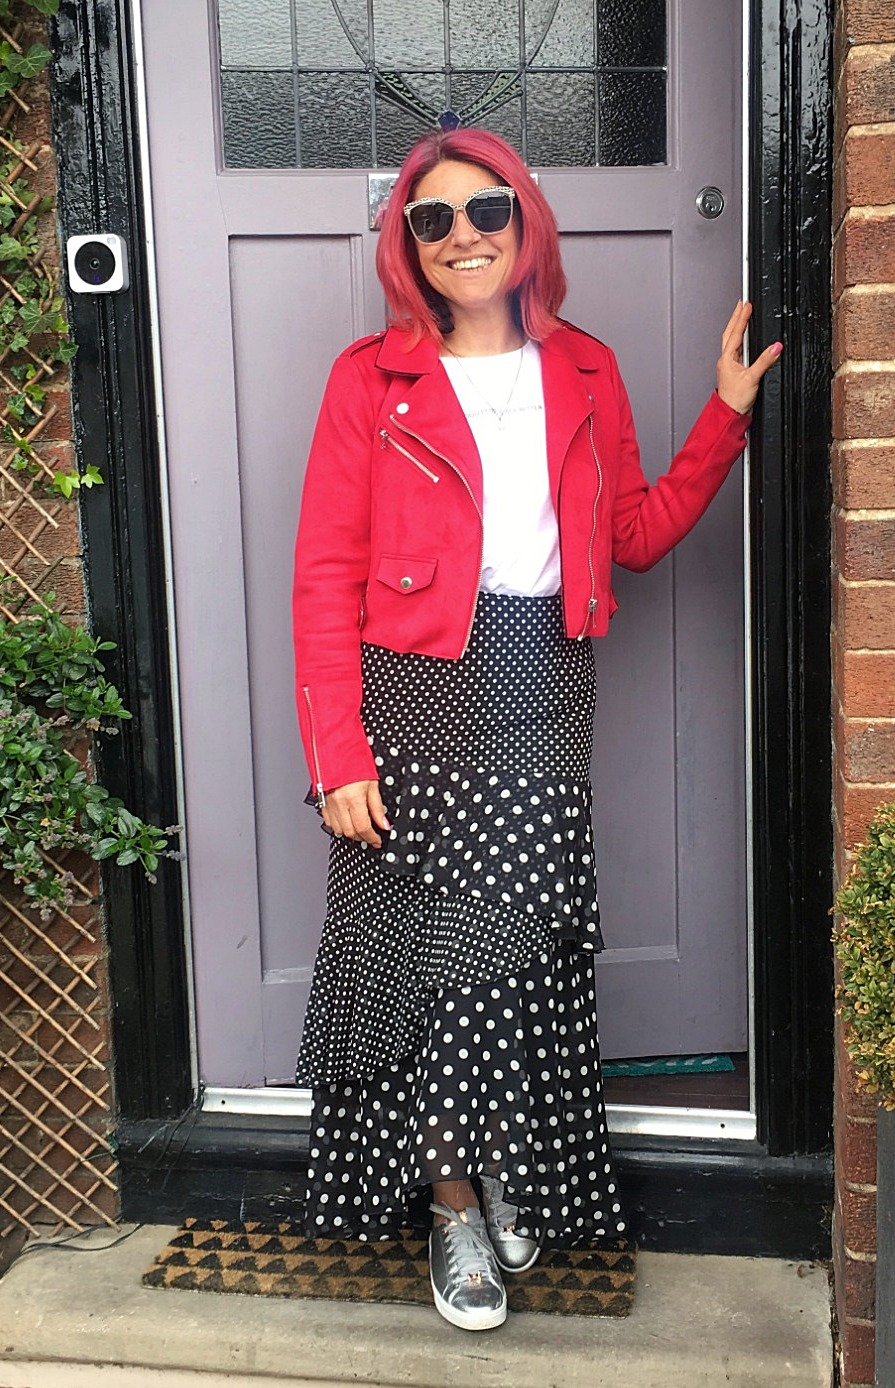 Here's me stepping out on my 50th birthday - officially Mid-Century!